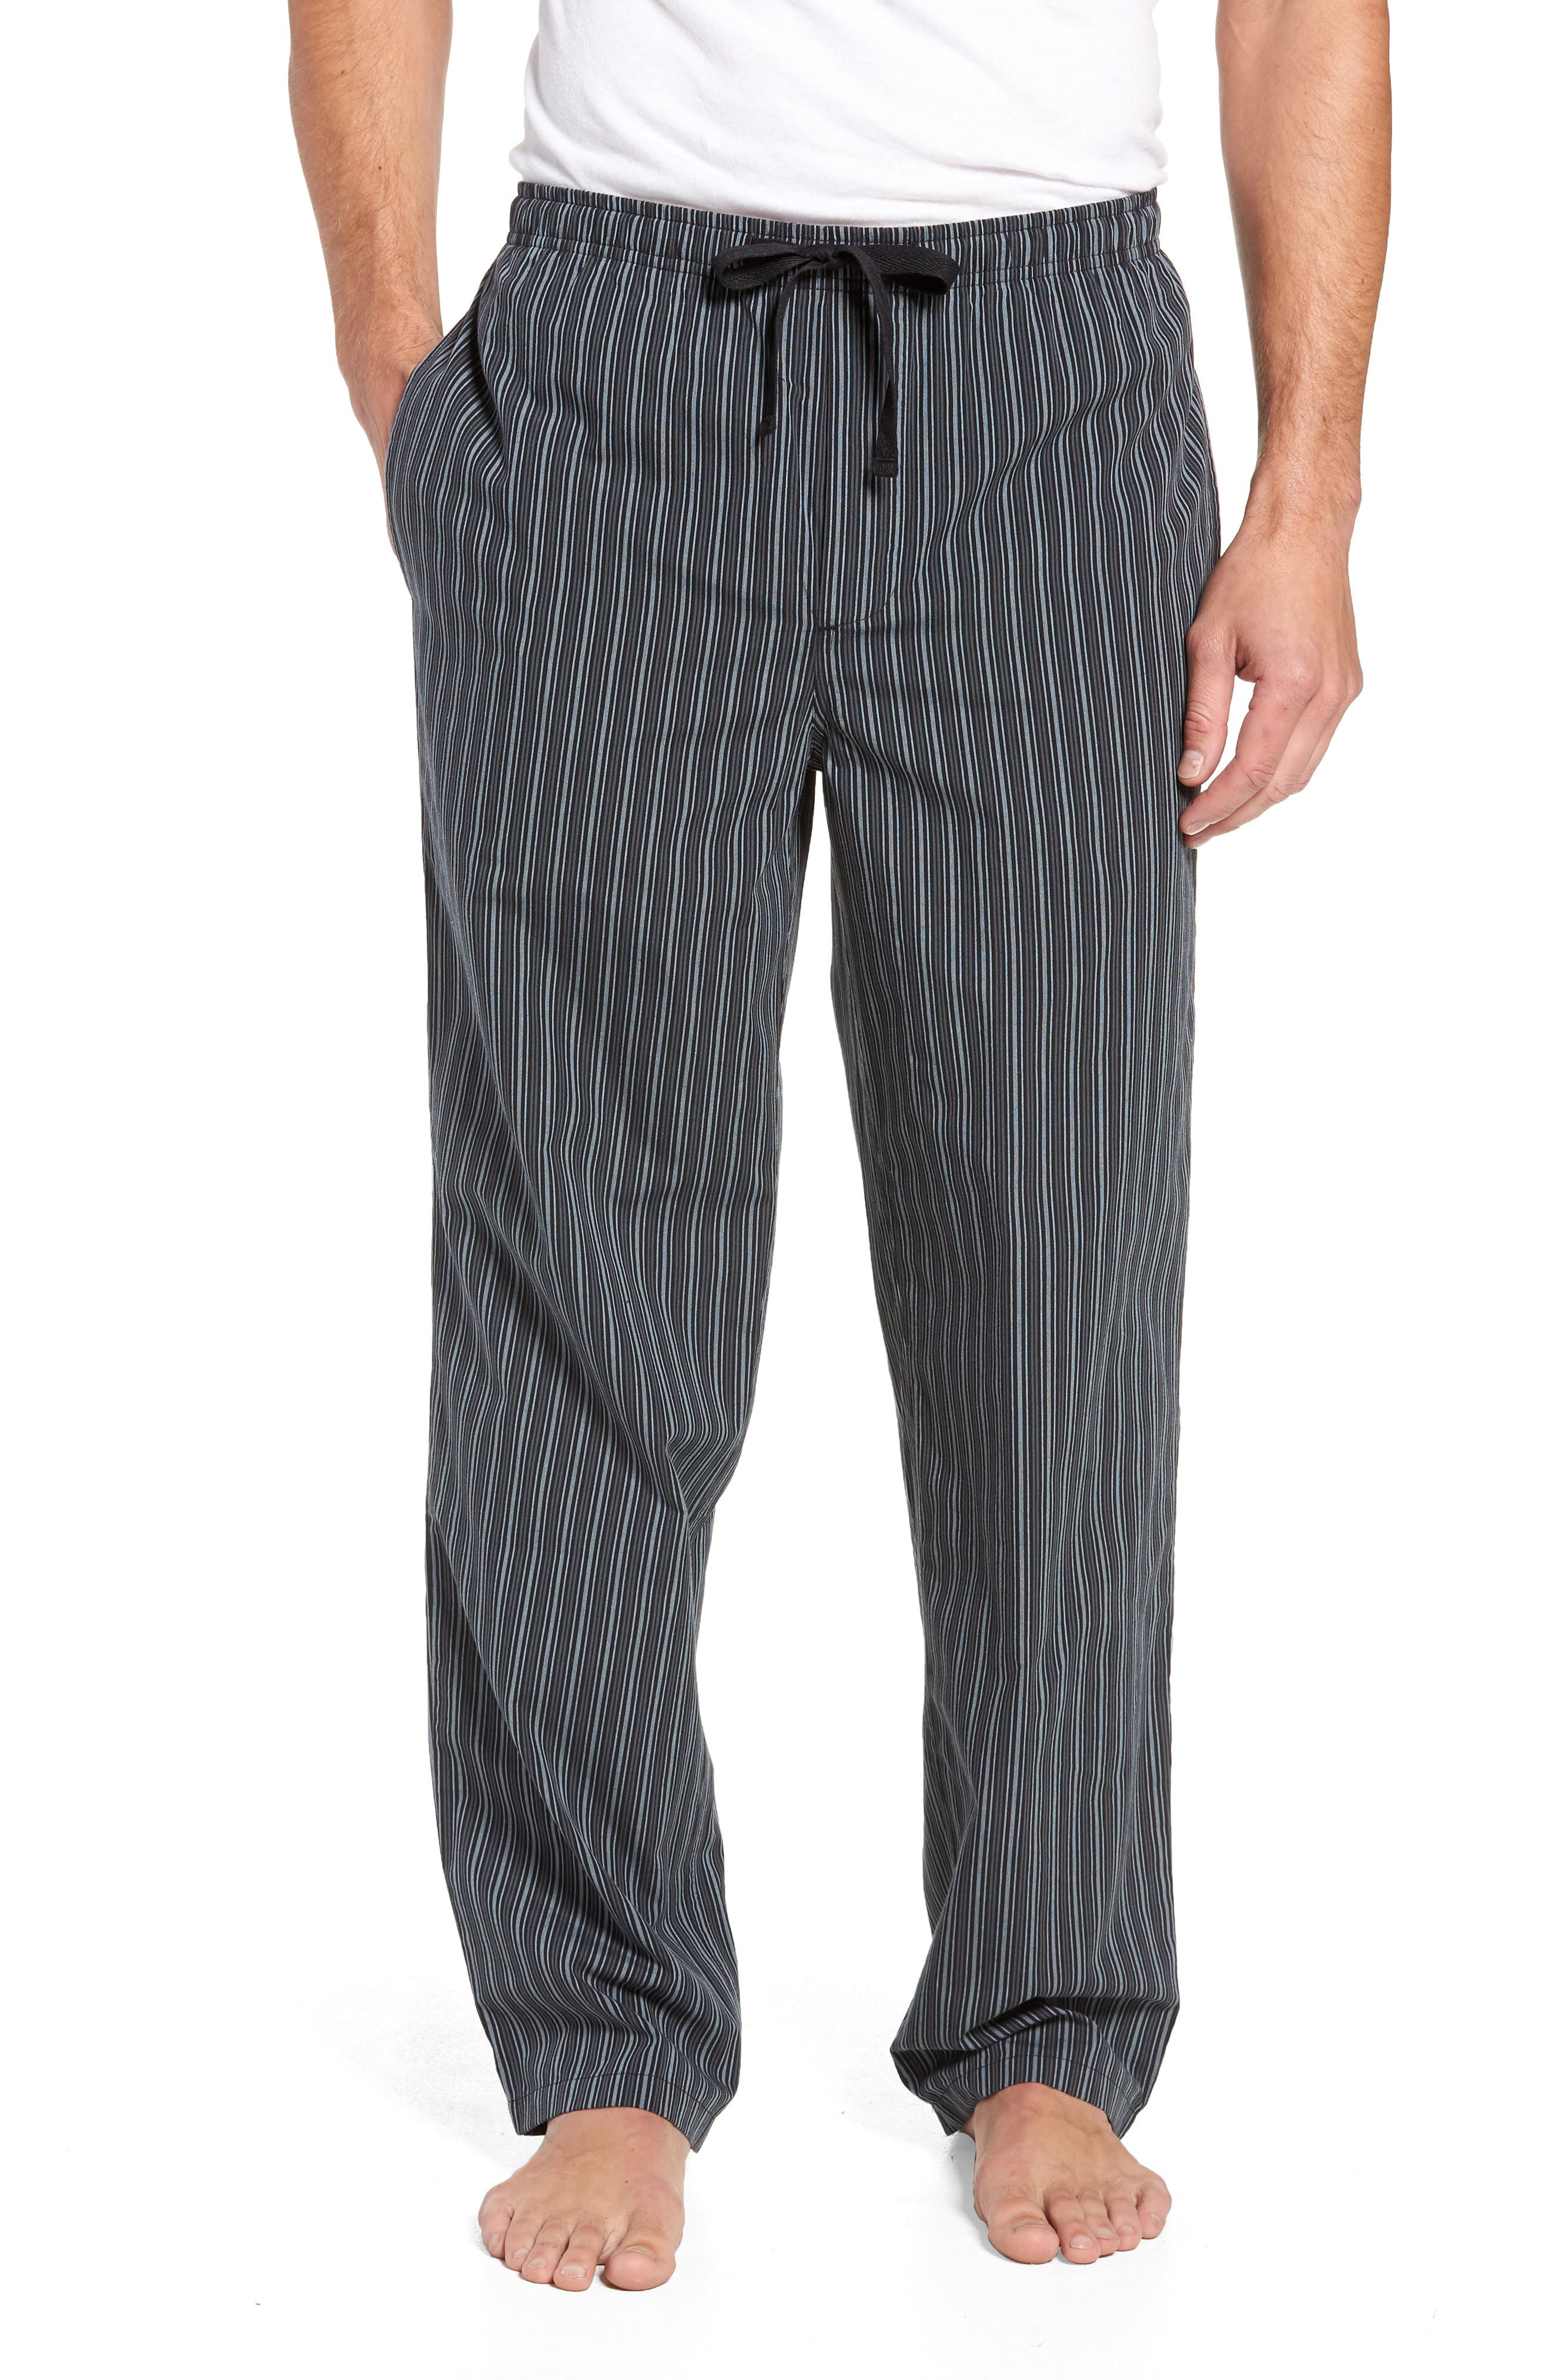 NORDSTROM MEN'S SHOP, Poplin Pajama Pants, Main thumbnail 1, color, GREY- BLACK STRIPE